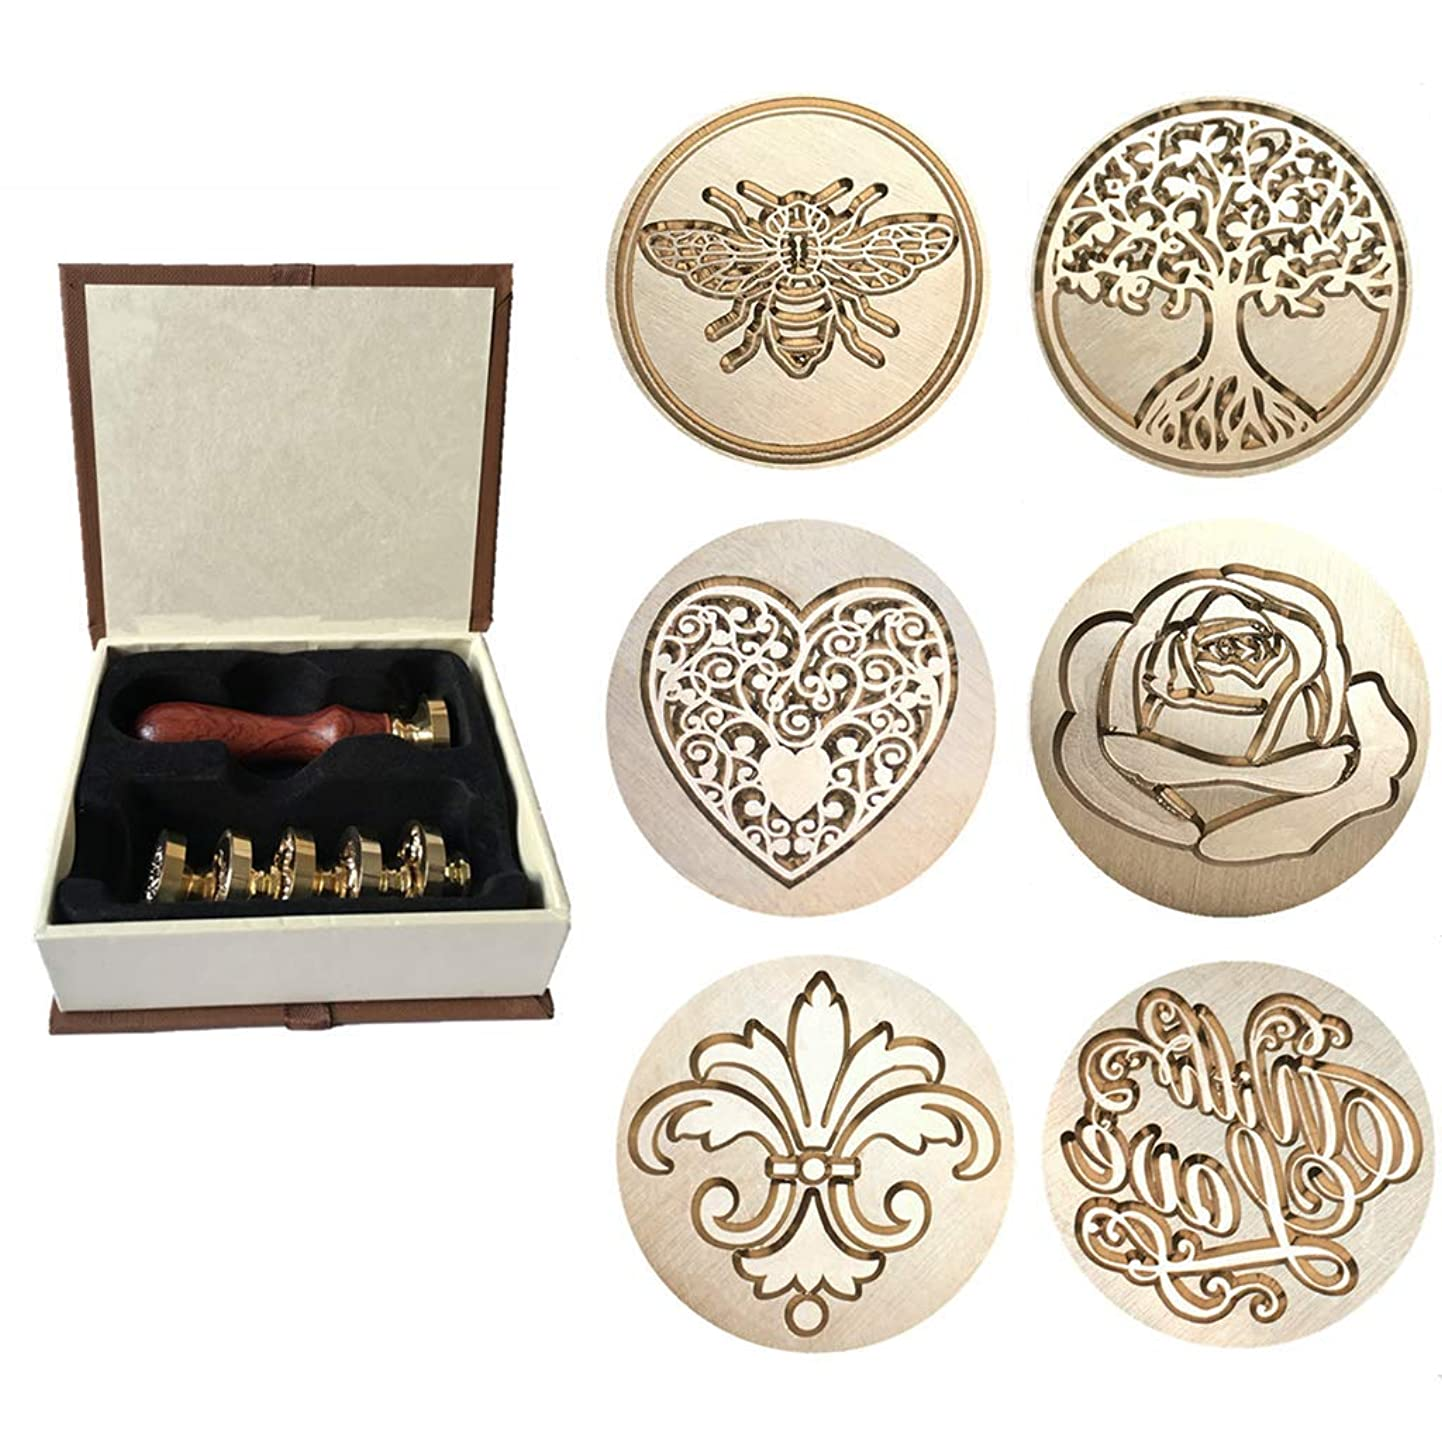 Wax Sealing Stamp, Moorlando 6PCS Sealing Wax Stamp Brass Heads + 1PC Wooden Handle with a Gift Box for Invitations Letters Envelopes Wax Sealing emuhgivnxqw3